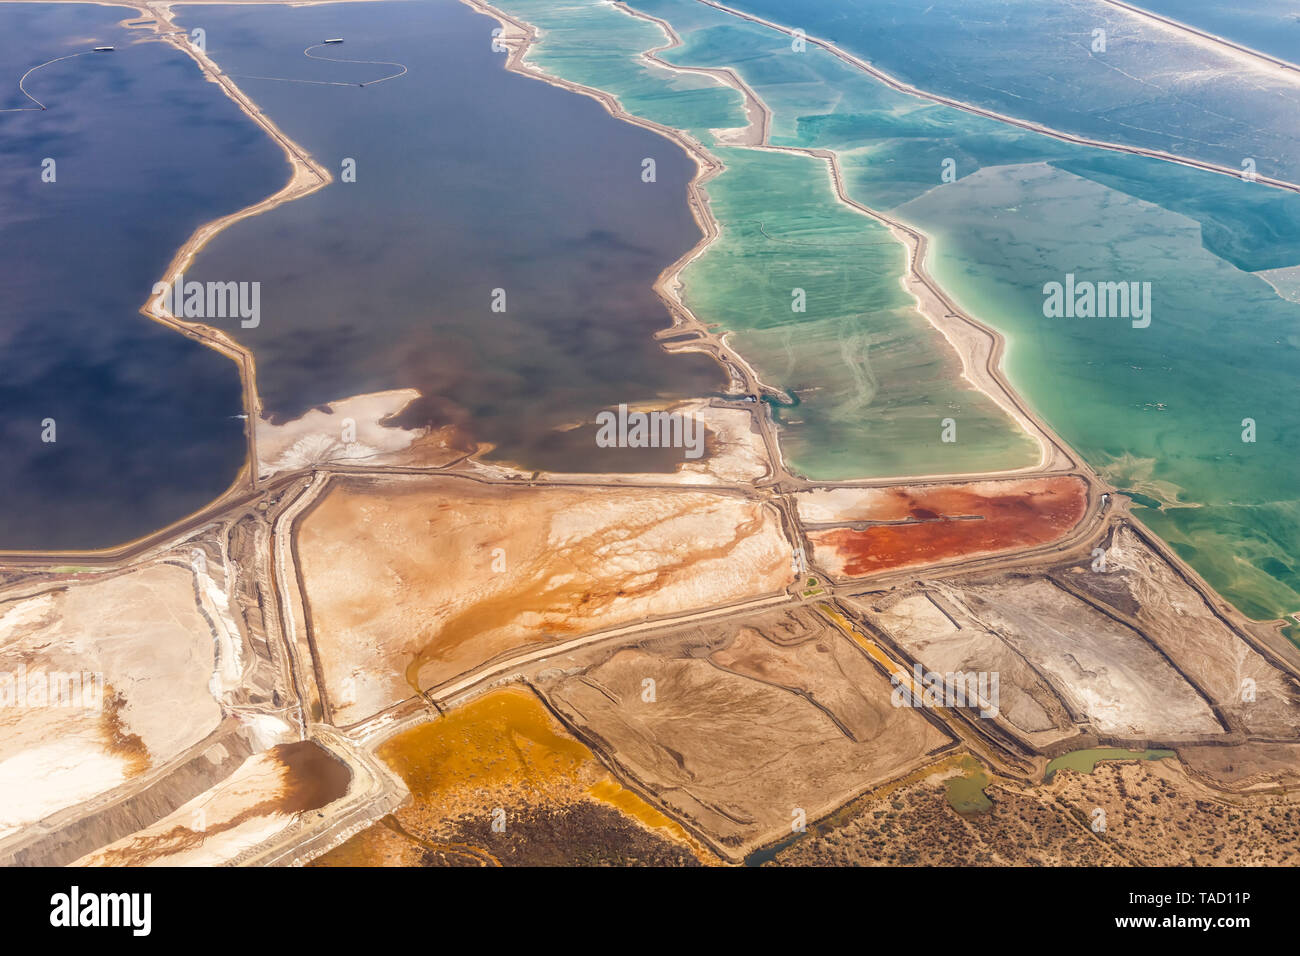 Dead Sea Israel landscape nature salt extraction from above aerial view Jordan vacation holidays - Stock Image